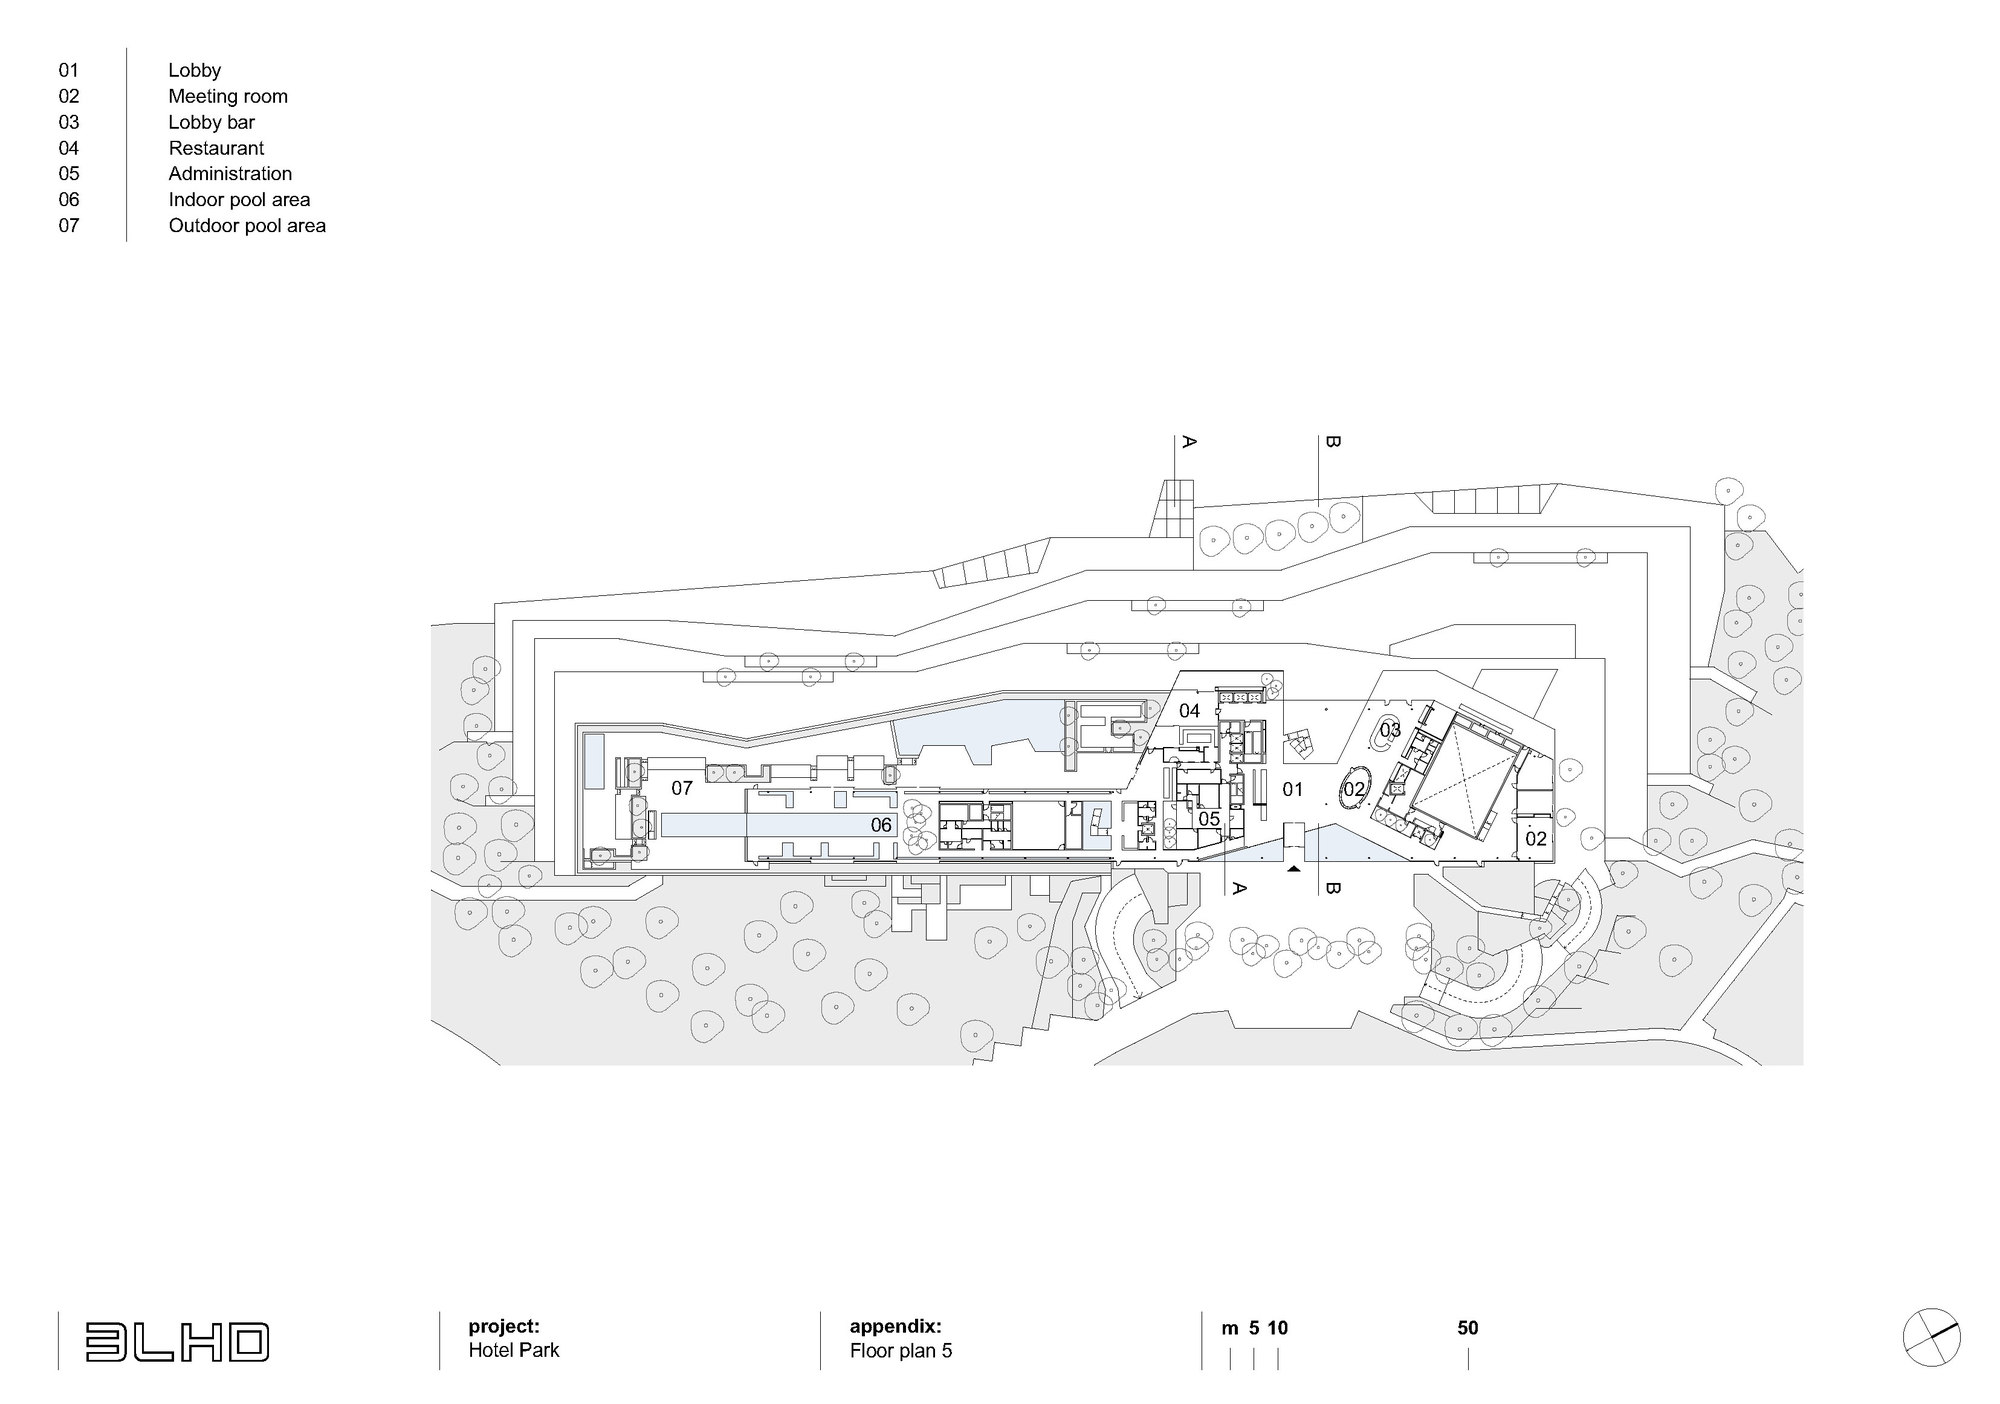 m7 _3LHD_202_GPHR_drawings_07_Floor_plan_5.jpg